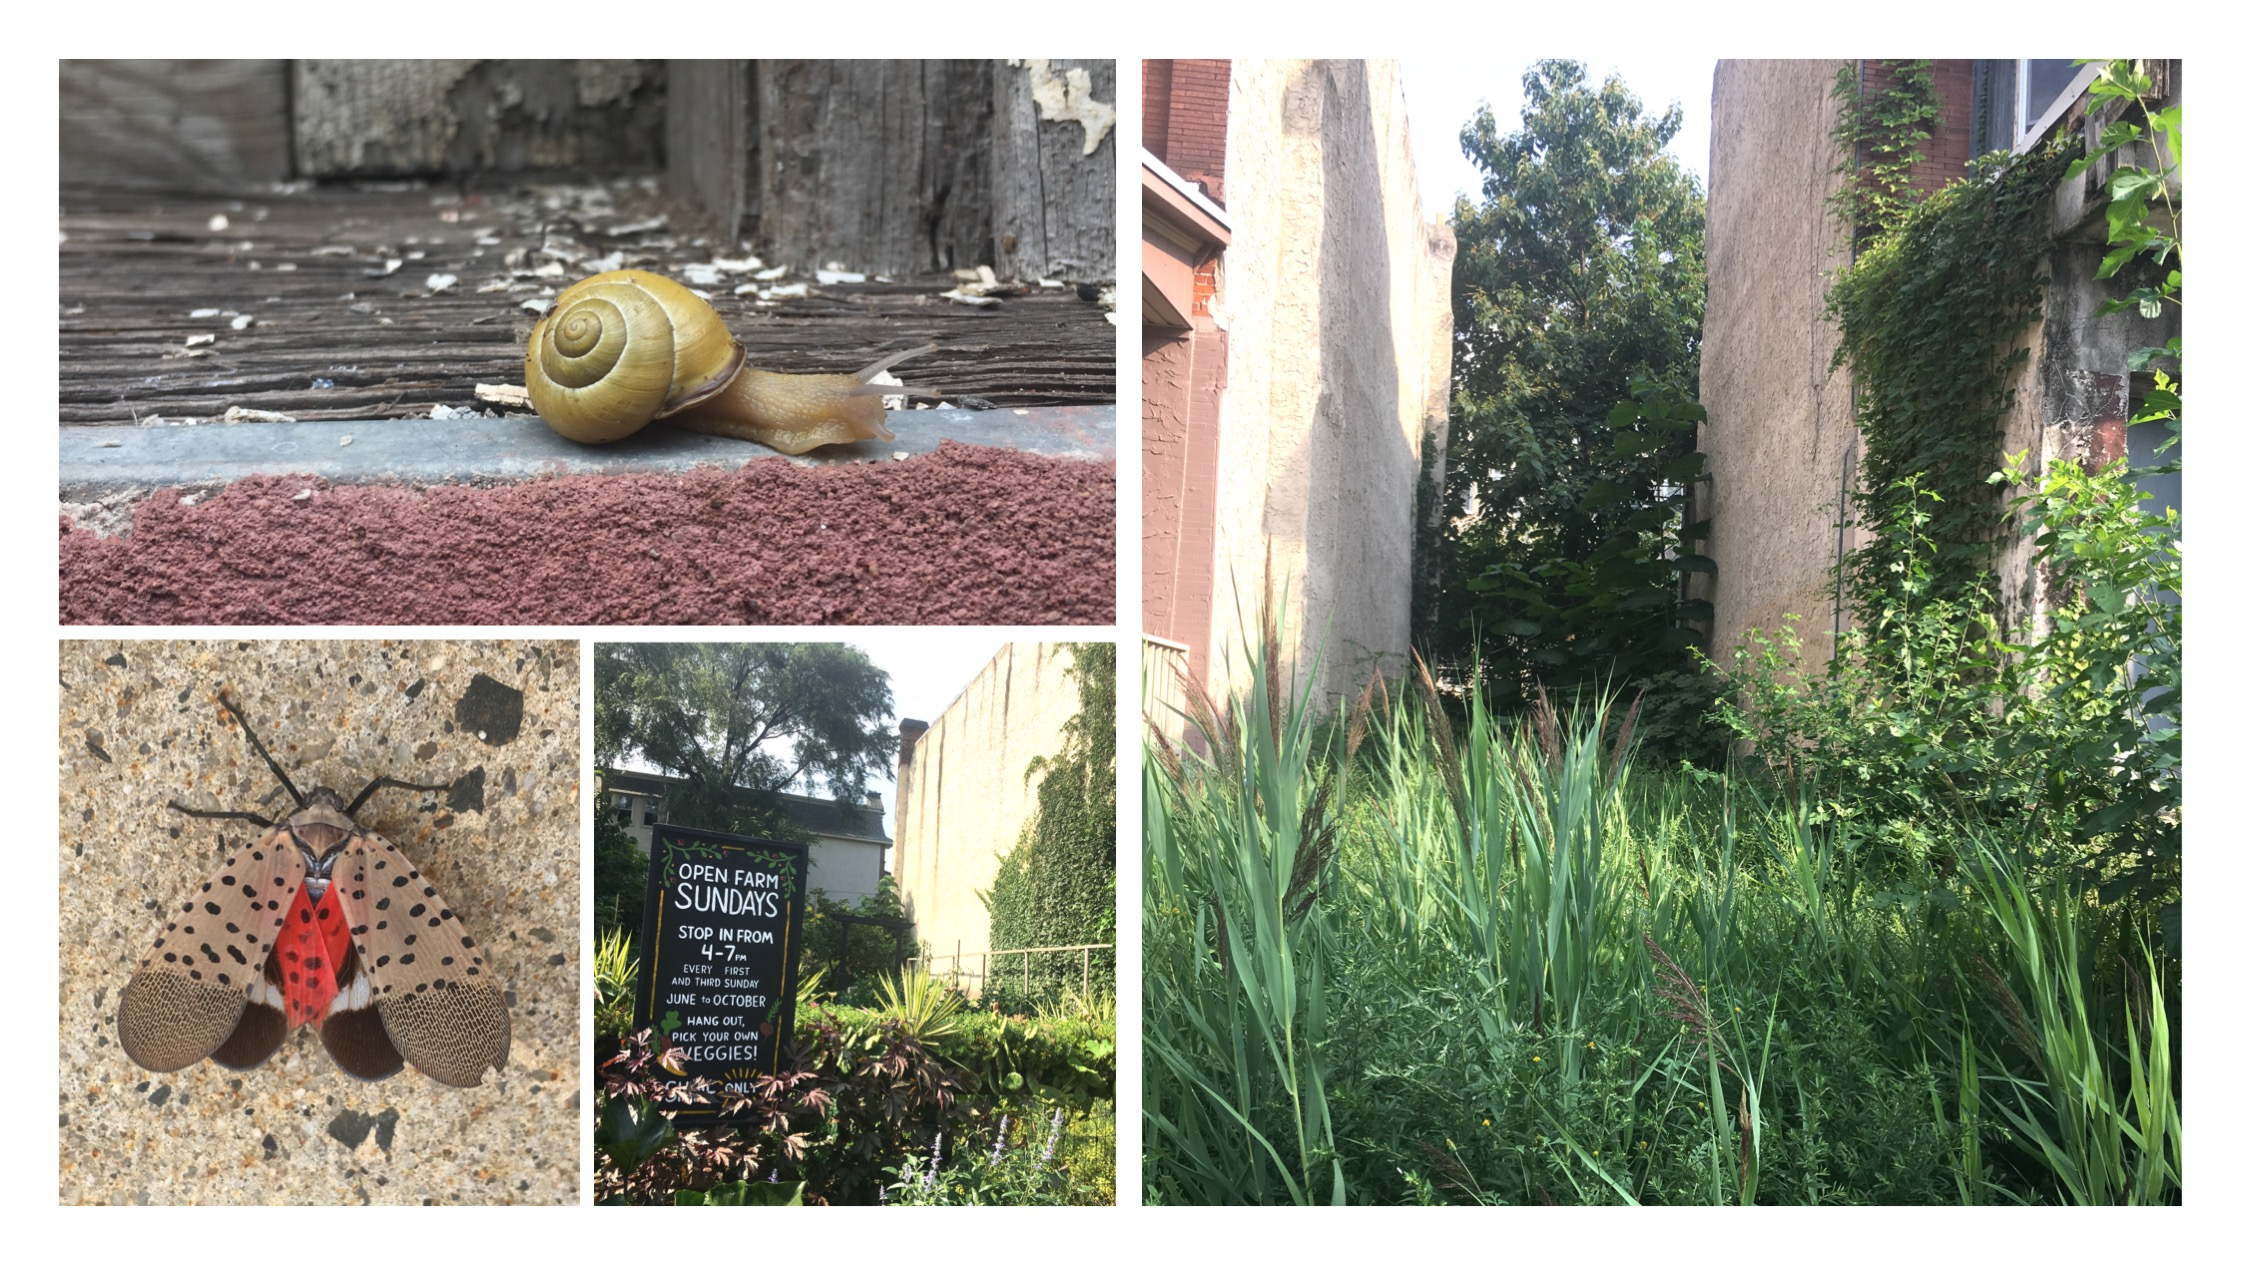 Clockwise from top right: A garden snail found in a West Philly backyard. A vacant lot in Kingsessing, Philadelphia. A small organic urban farm nestled between residences on Chester Avenue. The invasive planthopper, the spotted lanternfly ( Lycorma delicatula ) at an outlet shopping mall in the Philly suburbs.